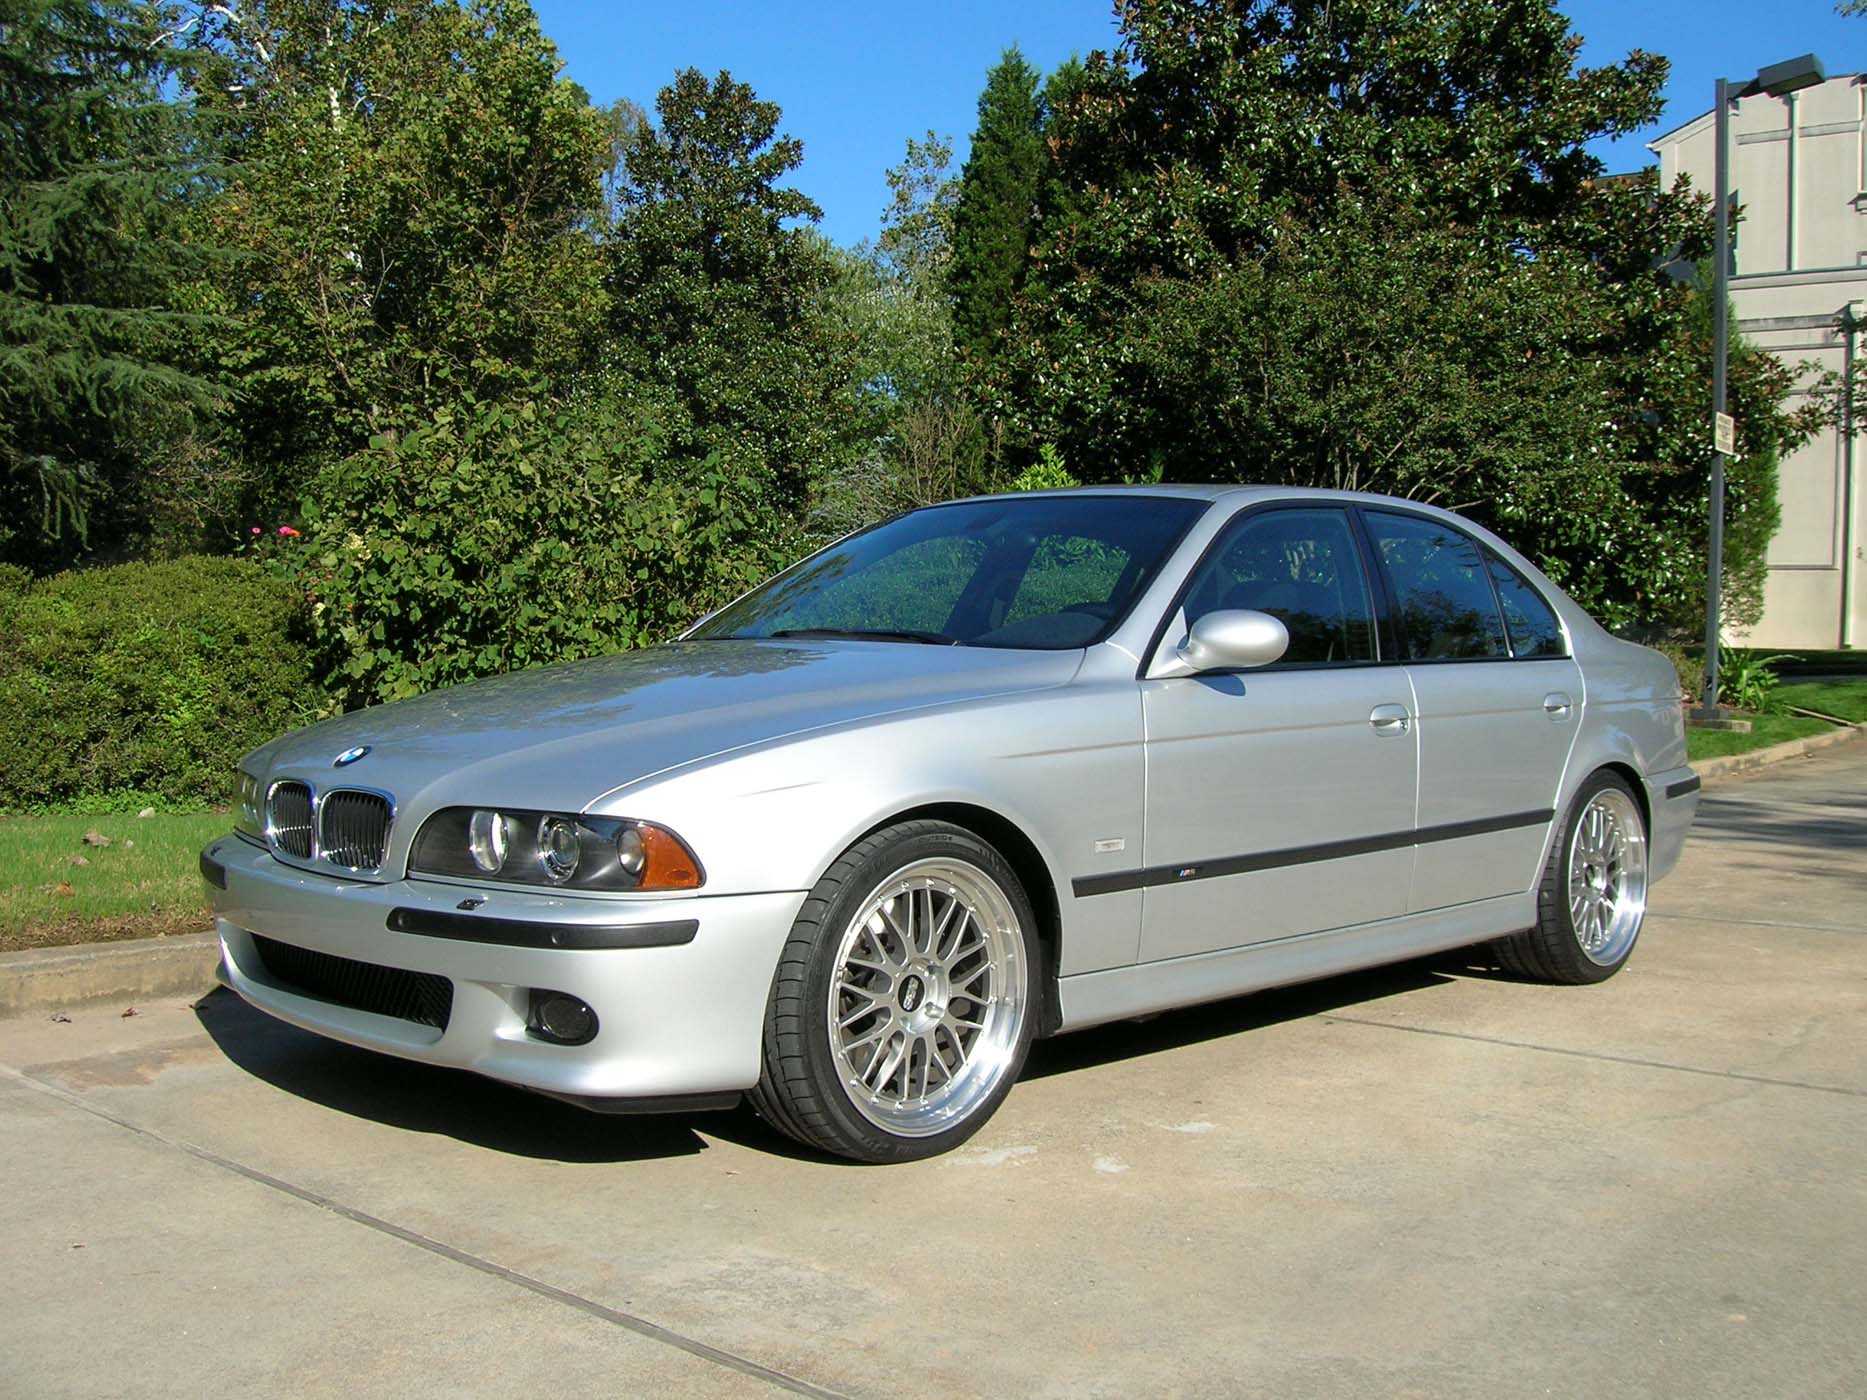 Pictures of the M5 with BBS LM Wheels-angle-side.jpg